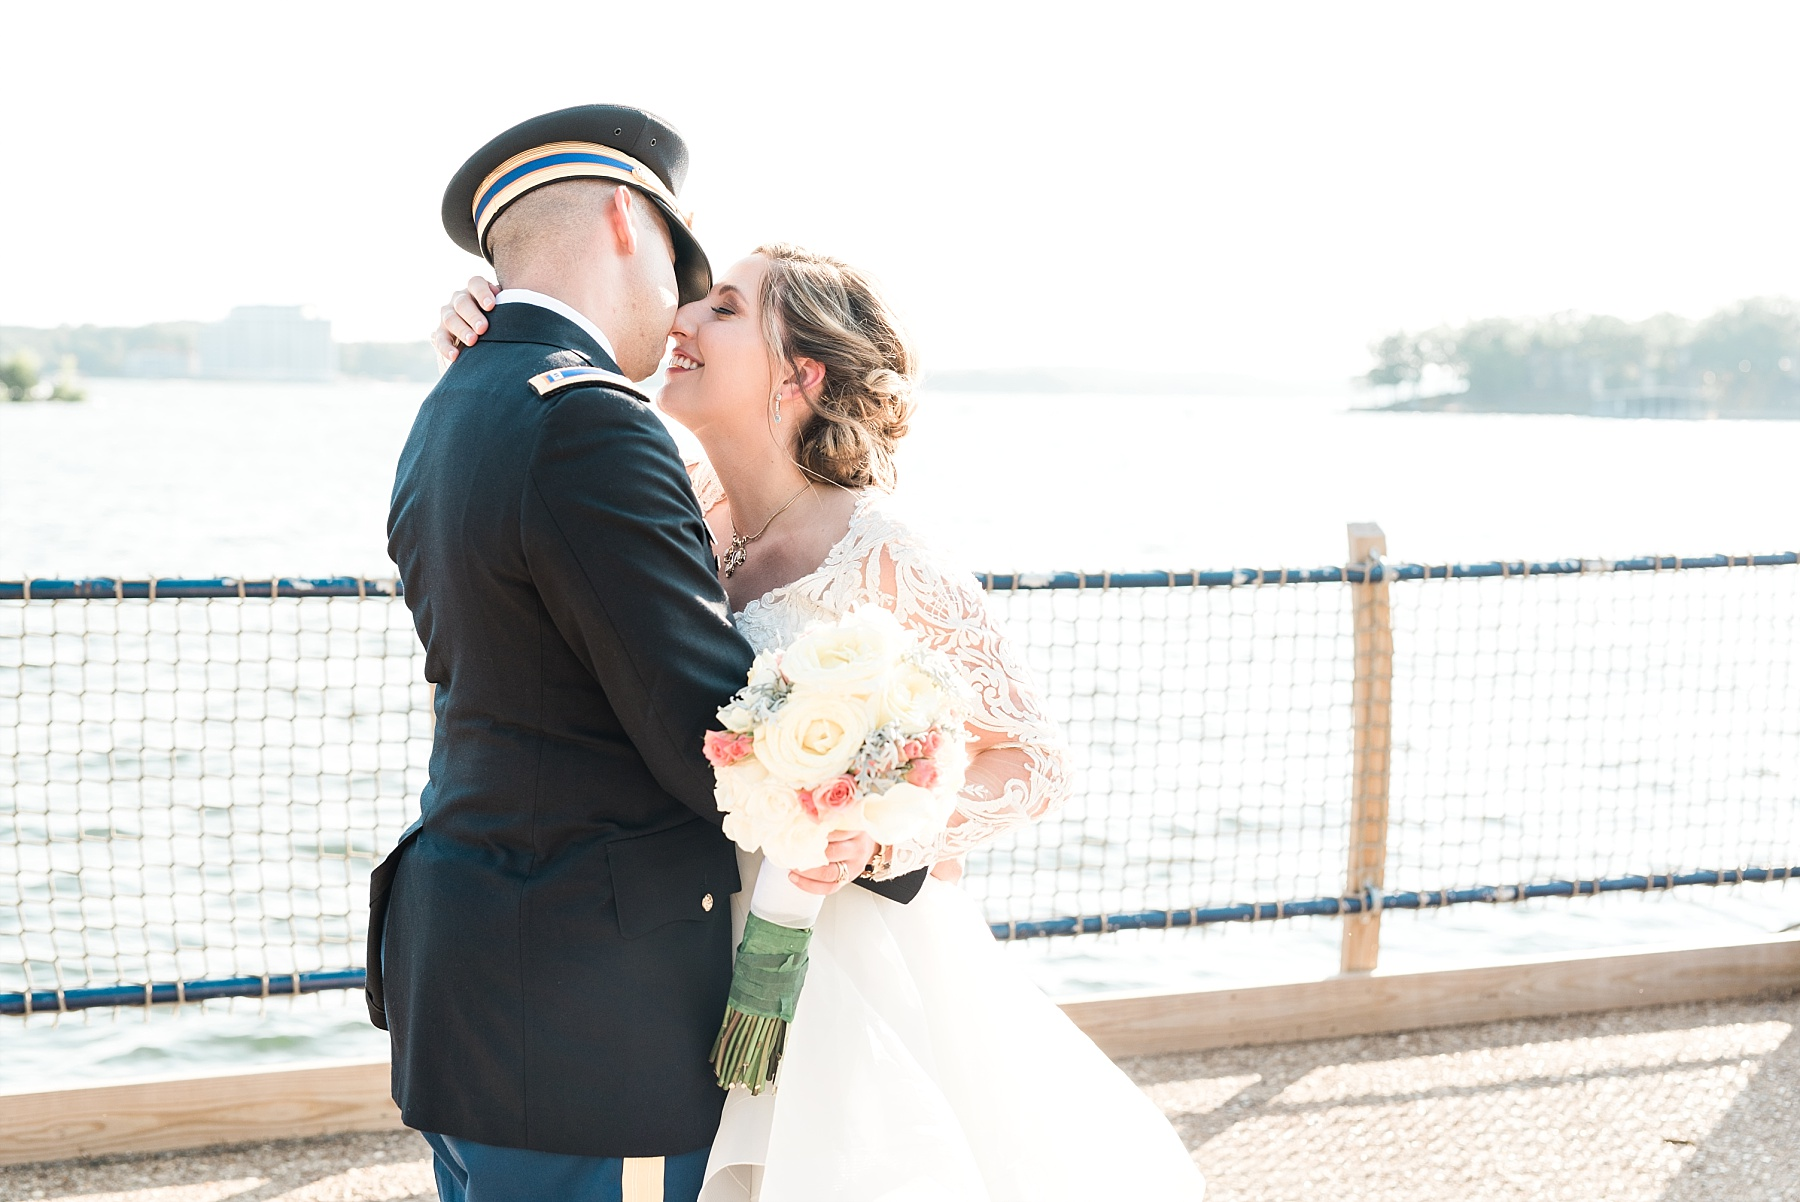 Beachside Sunset Wedding At Lodge Of Four Seasons At Lake Of The Ozarks By Kelsi Kliethermes Photography_0024.jpg